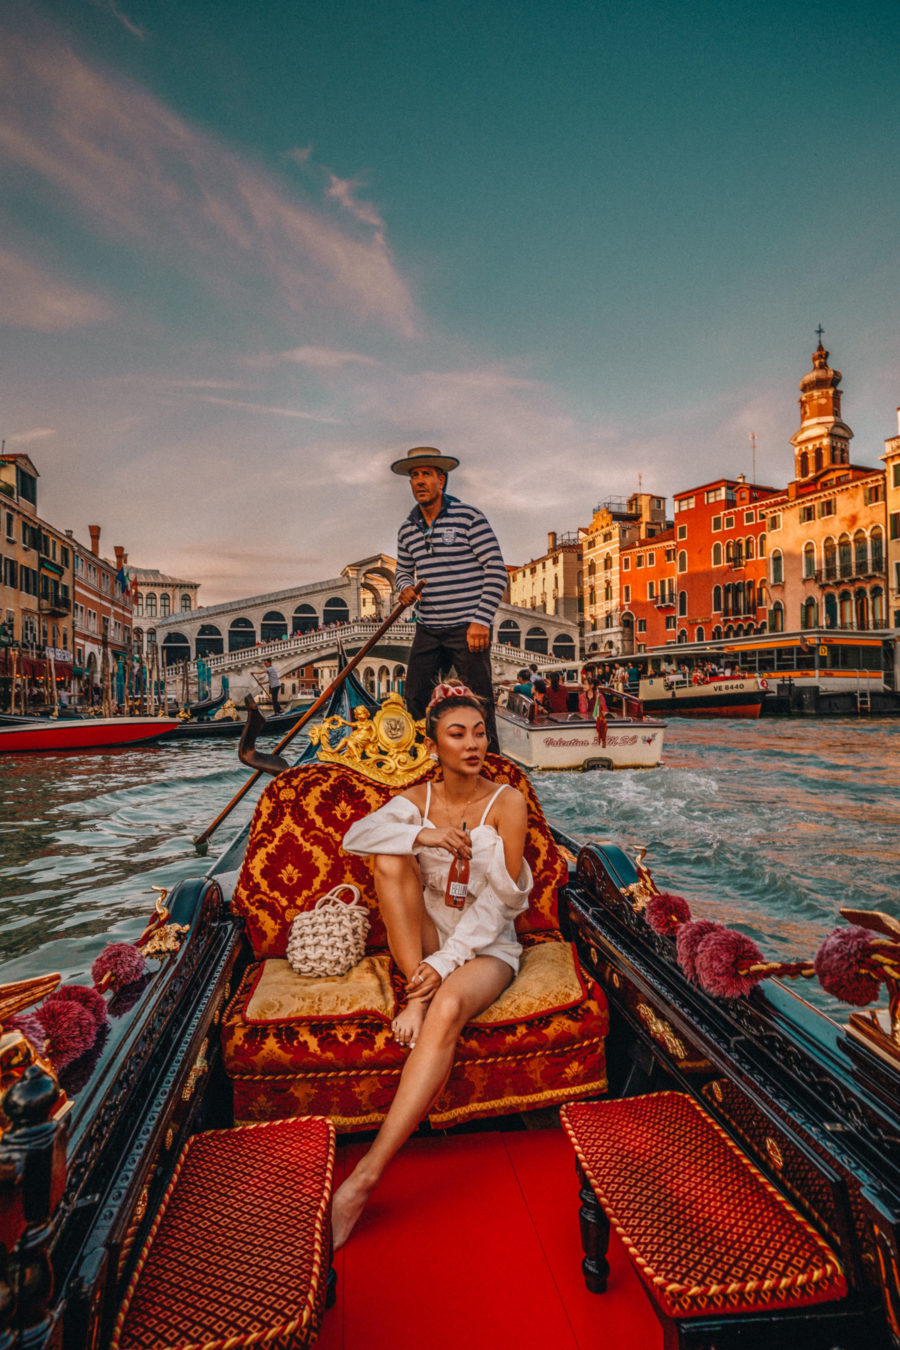 Instagram Outfits in Venice - polka dot dress, venice canals, venice bridge, travel blogger, all white summer outfit, gondola ride in venice // Notjessfashion.com